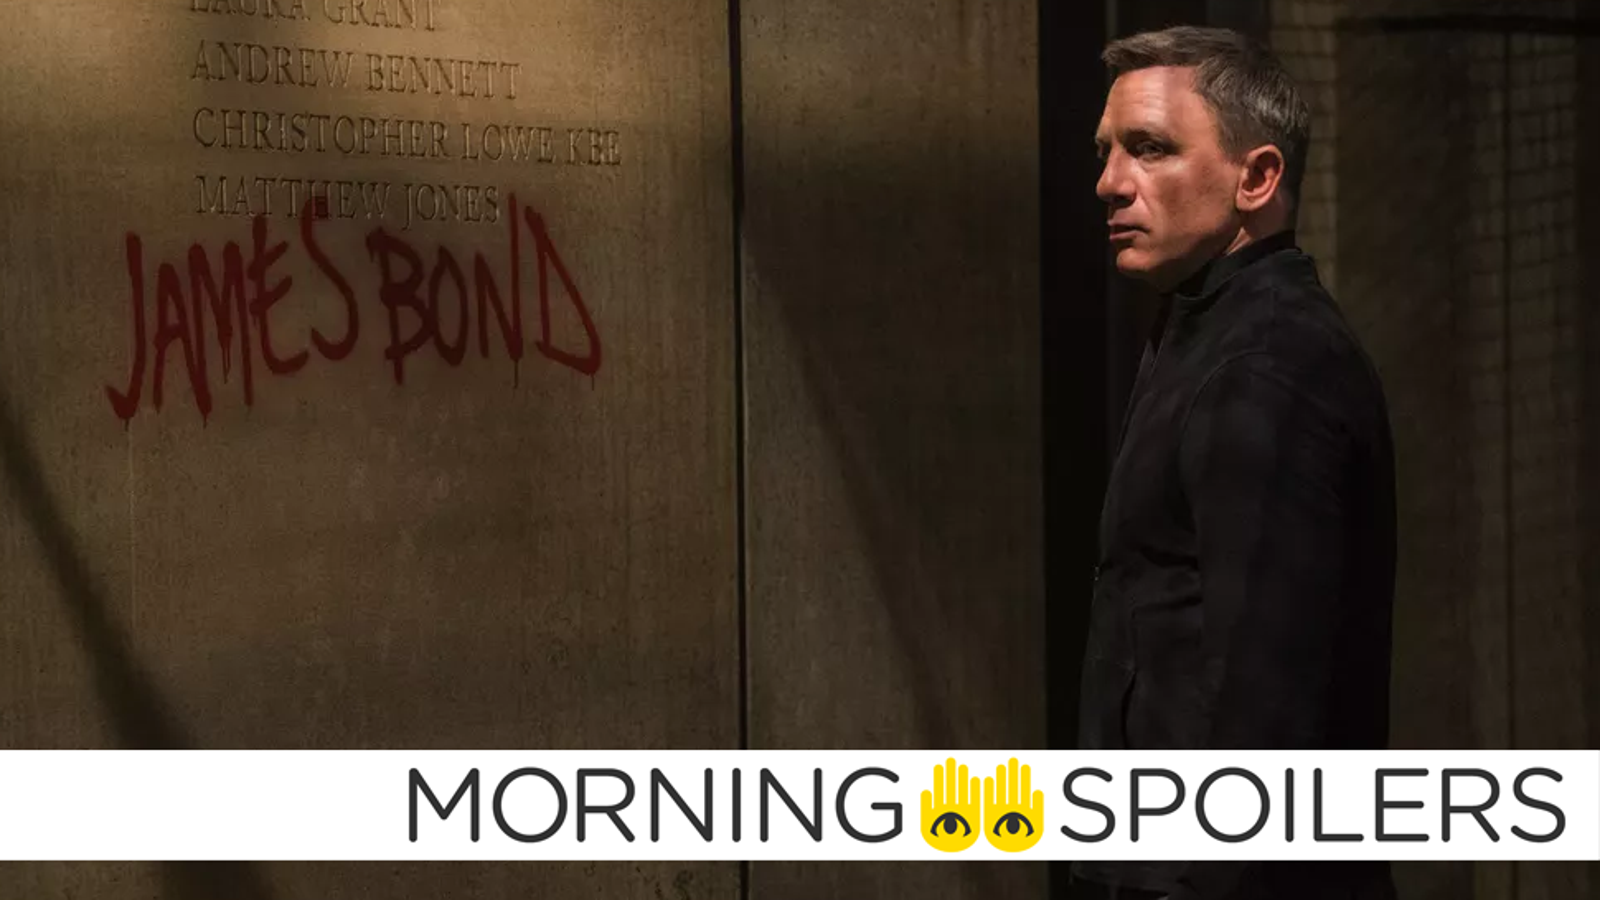 Don't Get Too Excited About Those James Bond Rumors